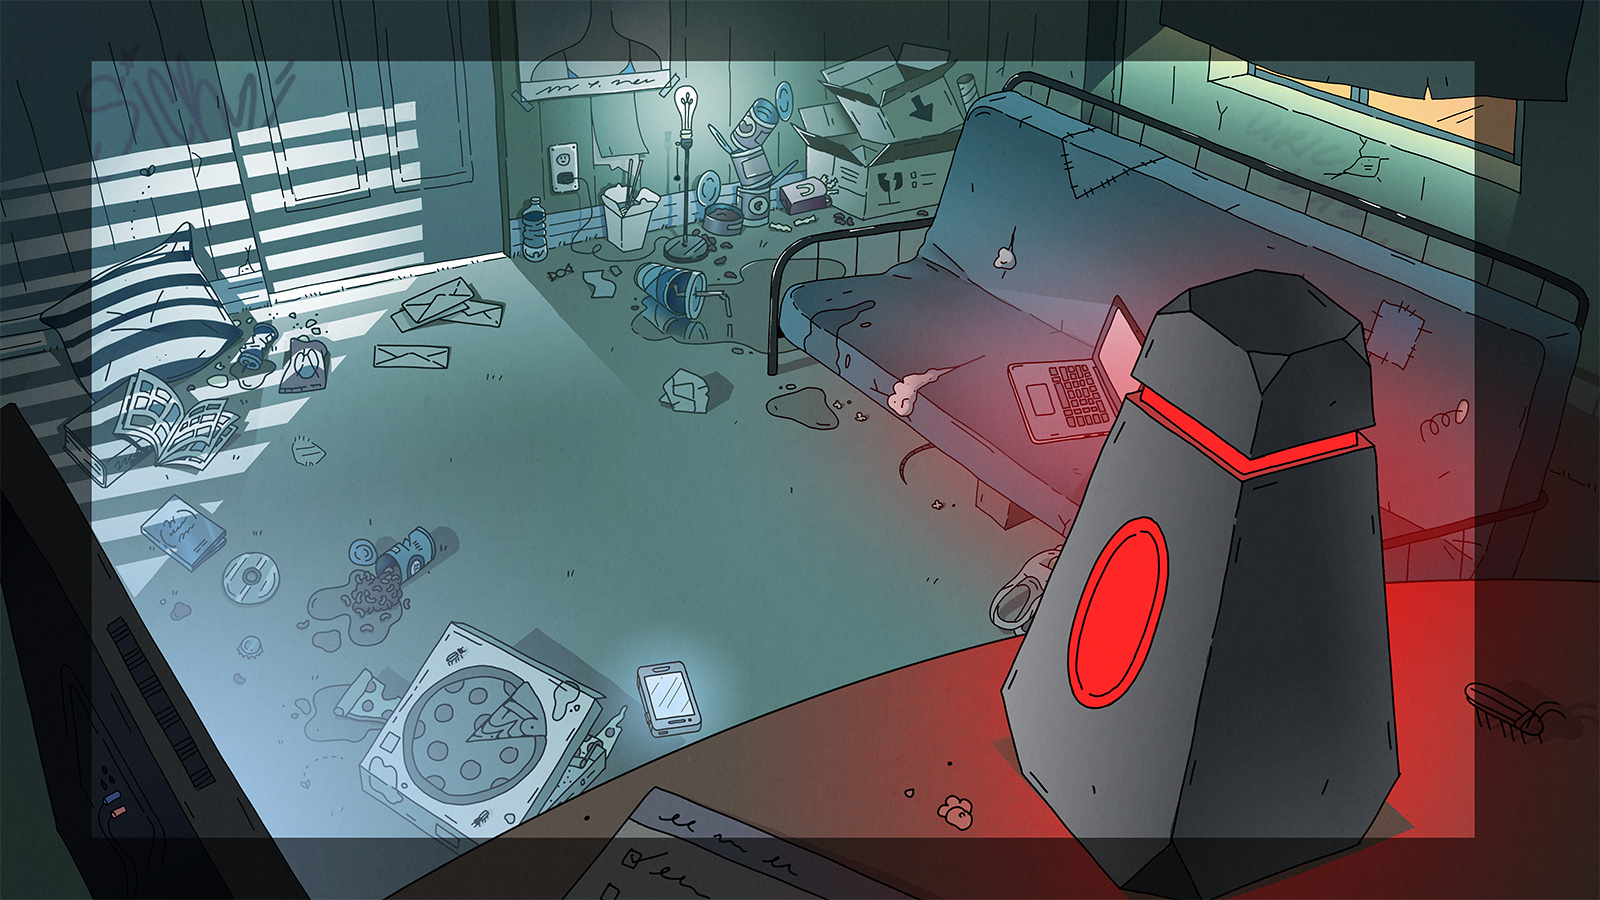 Background of Kidney's apartment